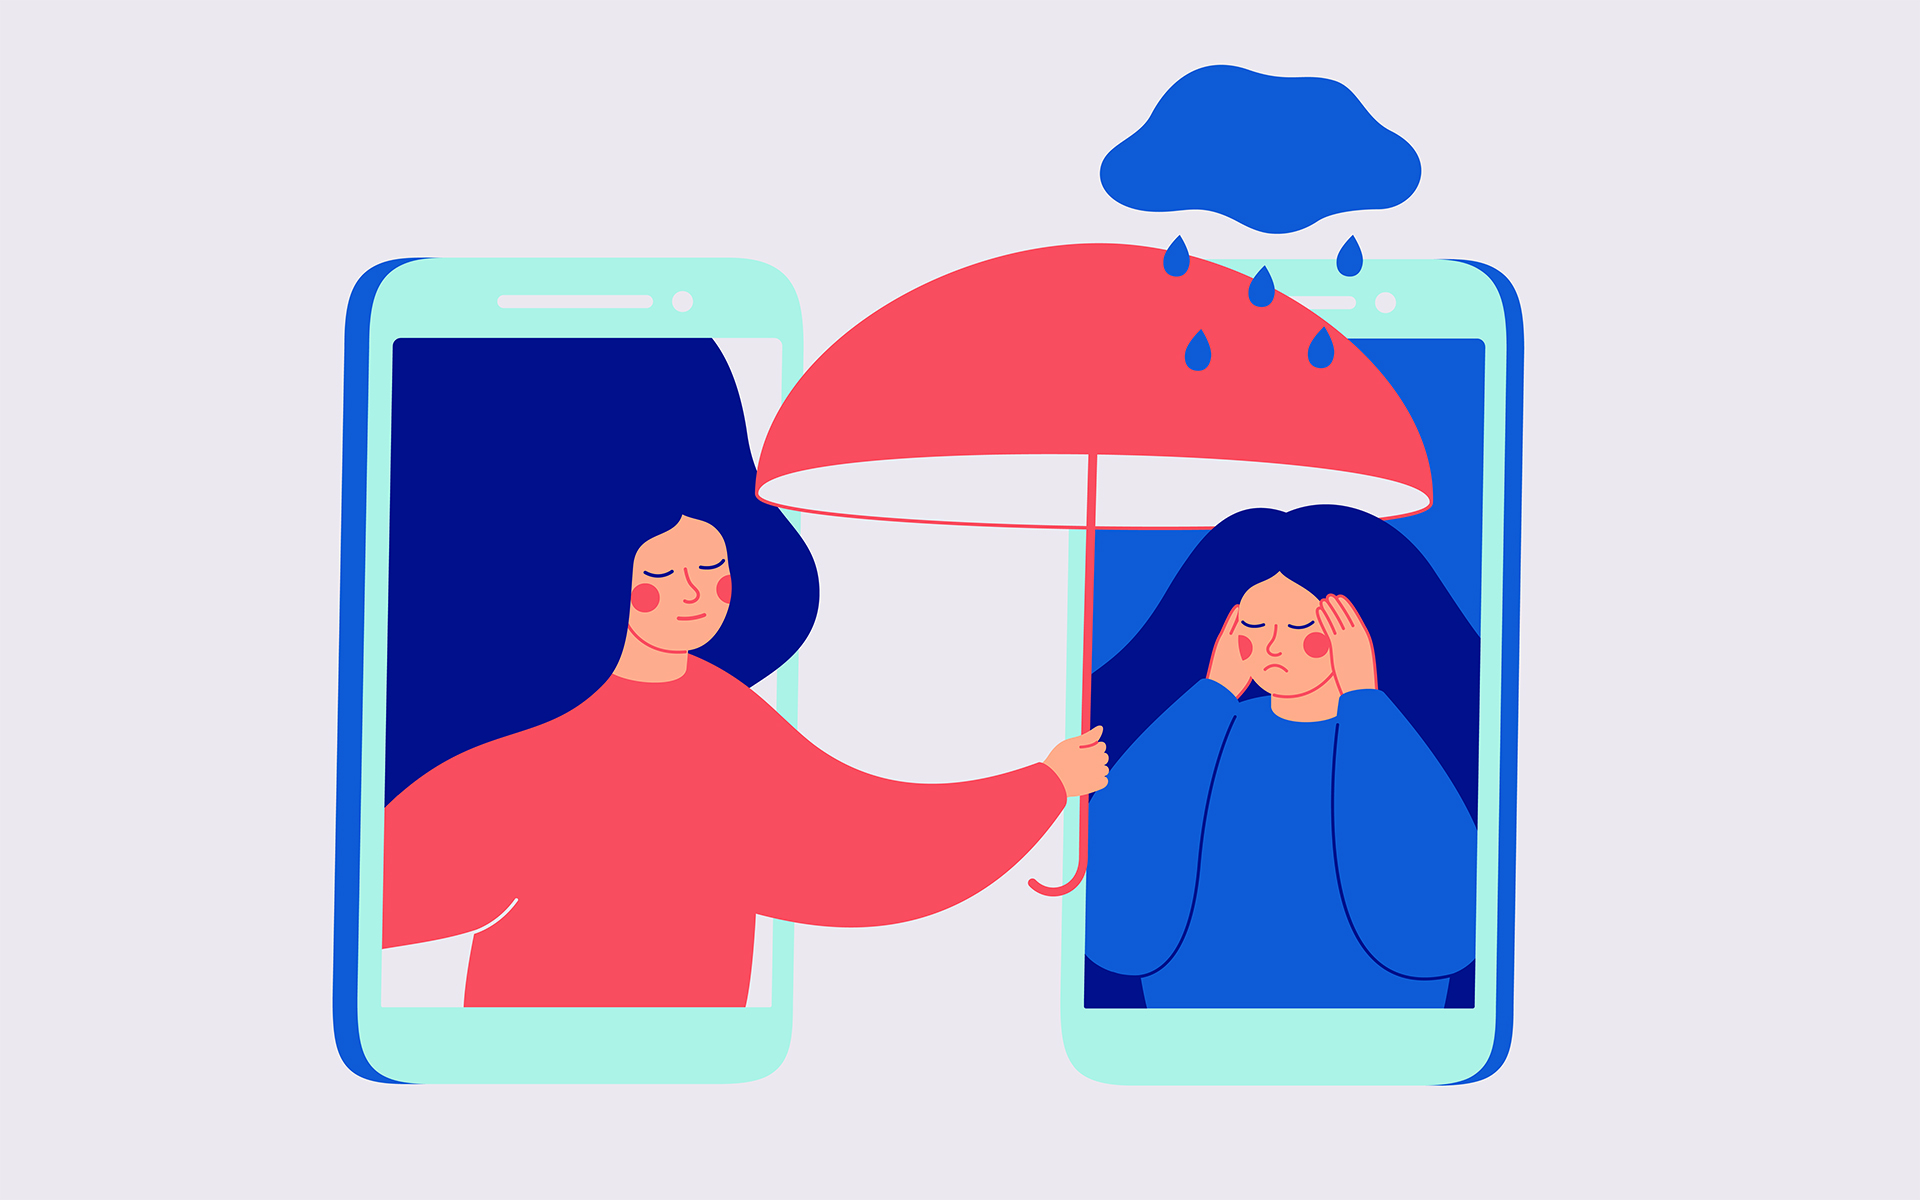 Turning moments of anger into moments of action - Illustration of a woman holding an umbrella for another woman